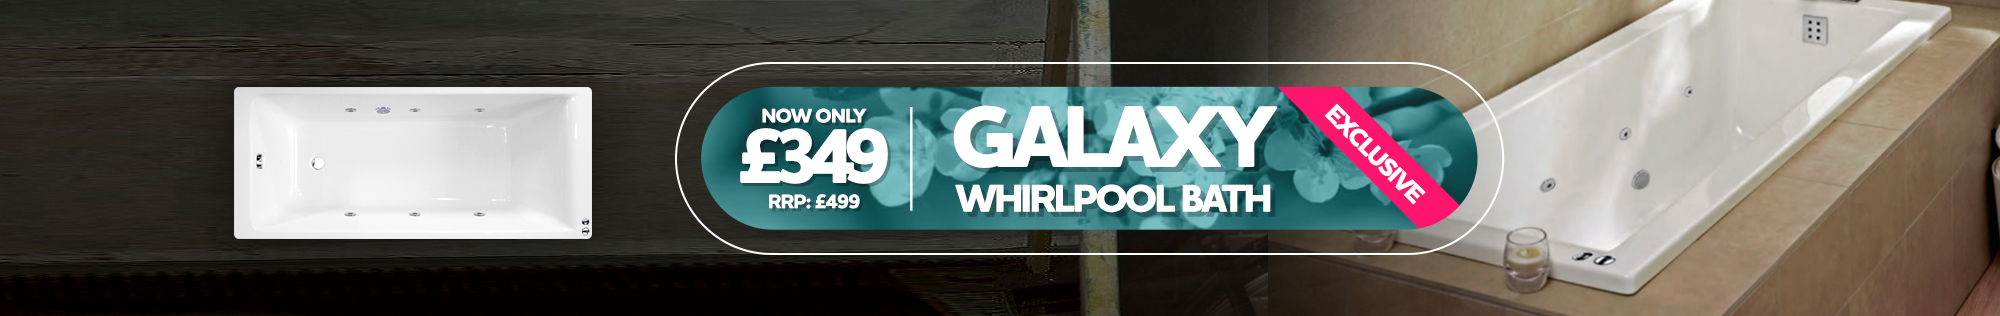 Exclusive deal - Galaxy Whirlpool Bath now only £349 RRP £499